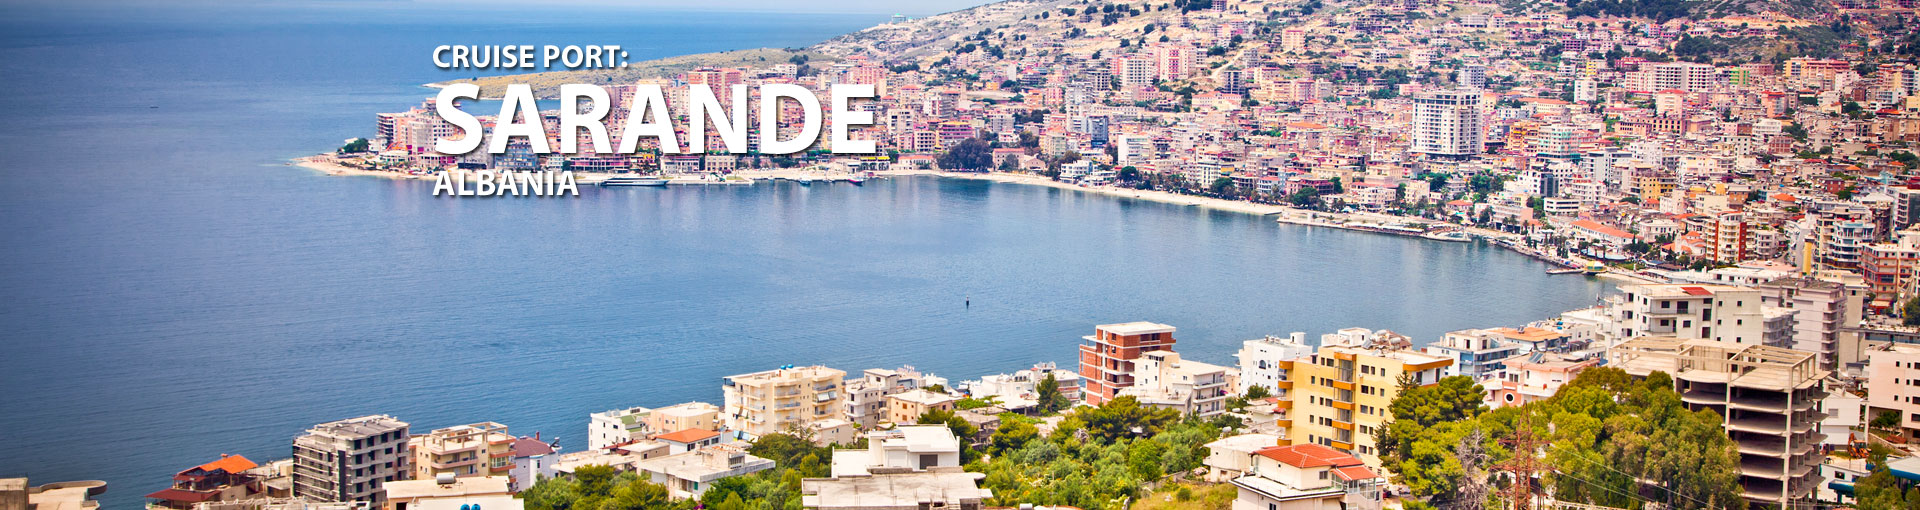 Cruises to Sarande, Albania